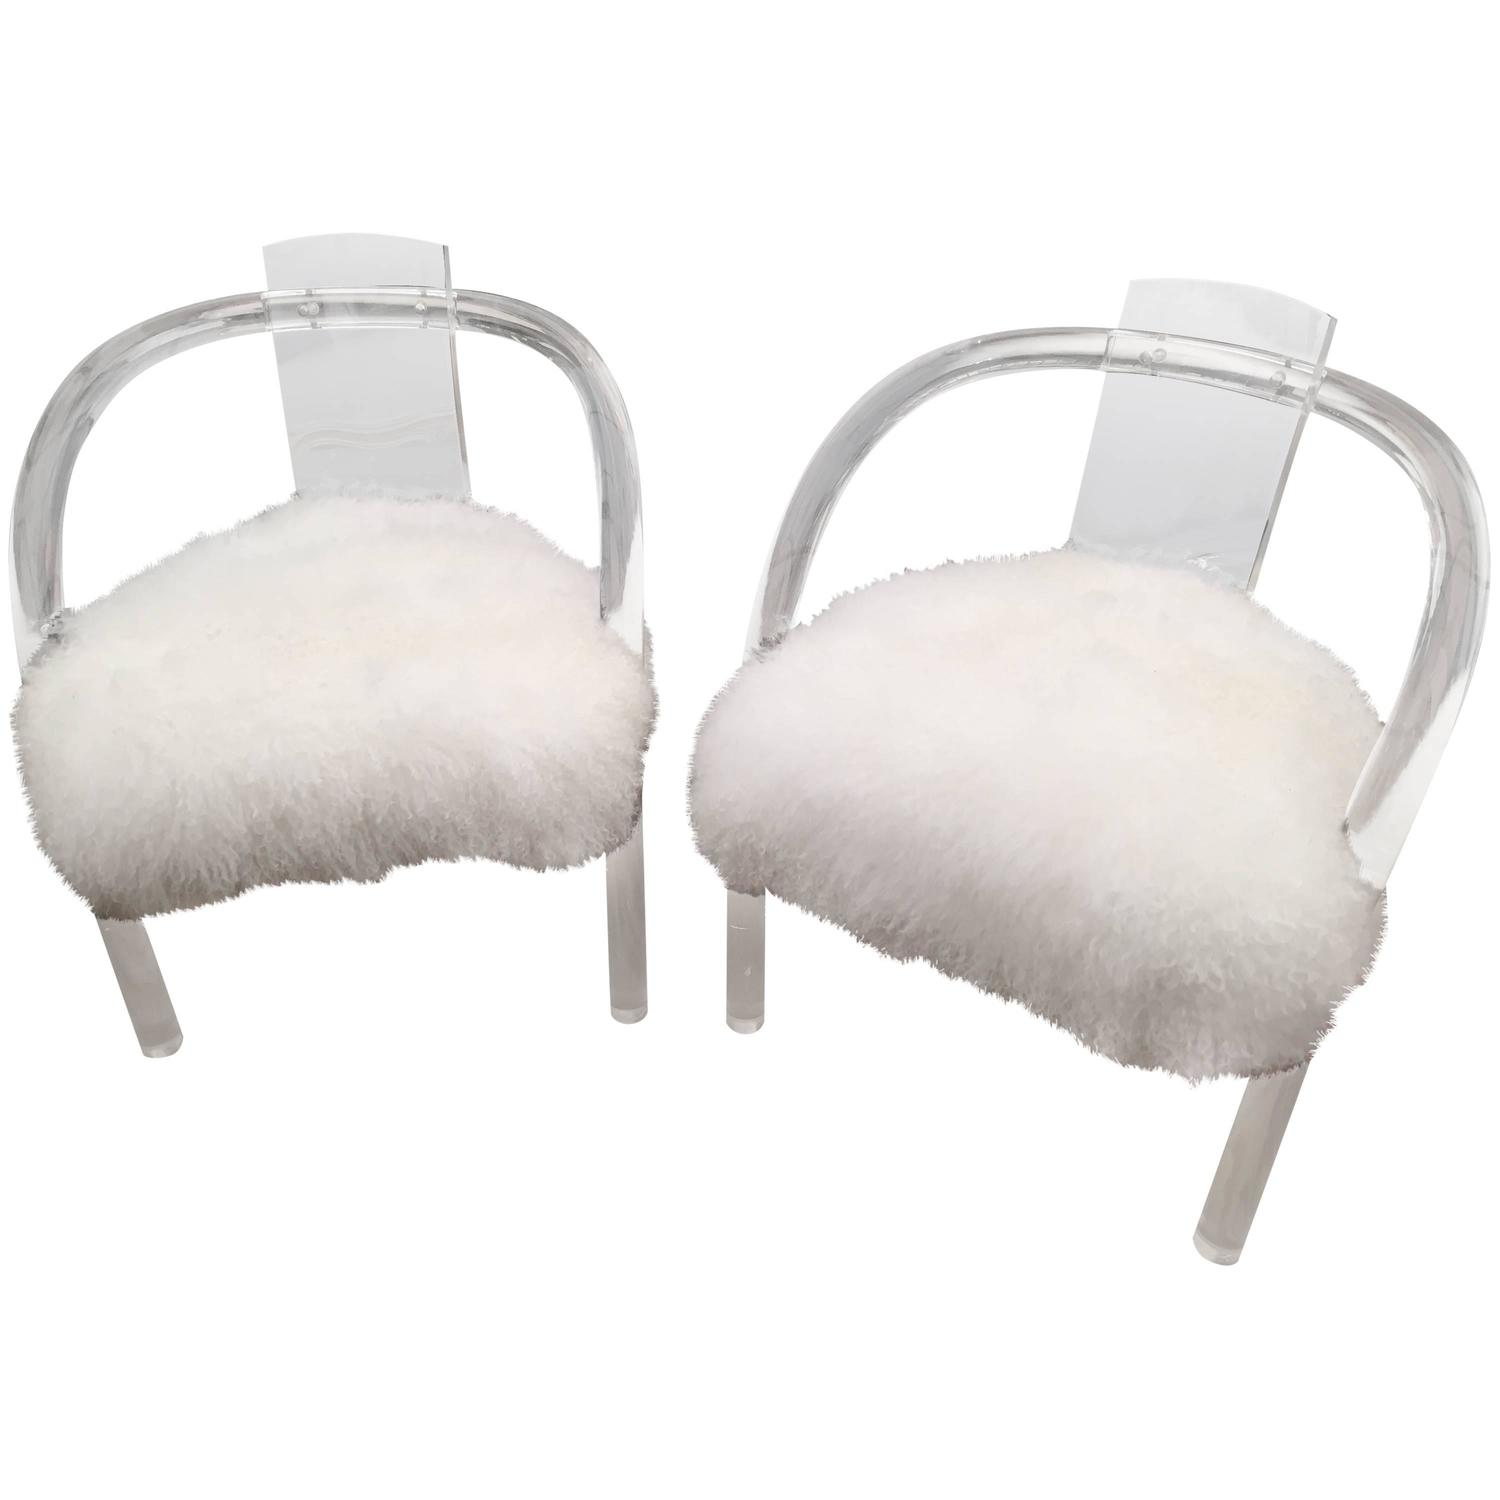 Antique Hollis Jones chairs covered in white Tibetan fur. Contrasting the modernist look with overwhelming texture.     This pair available at  Shop Tiffany .